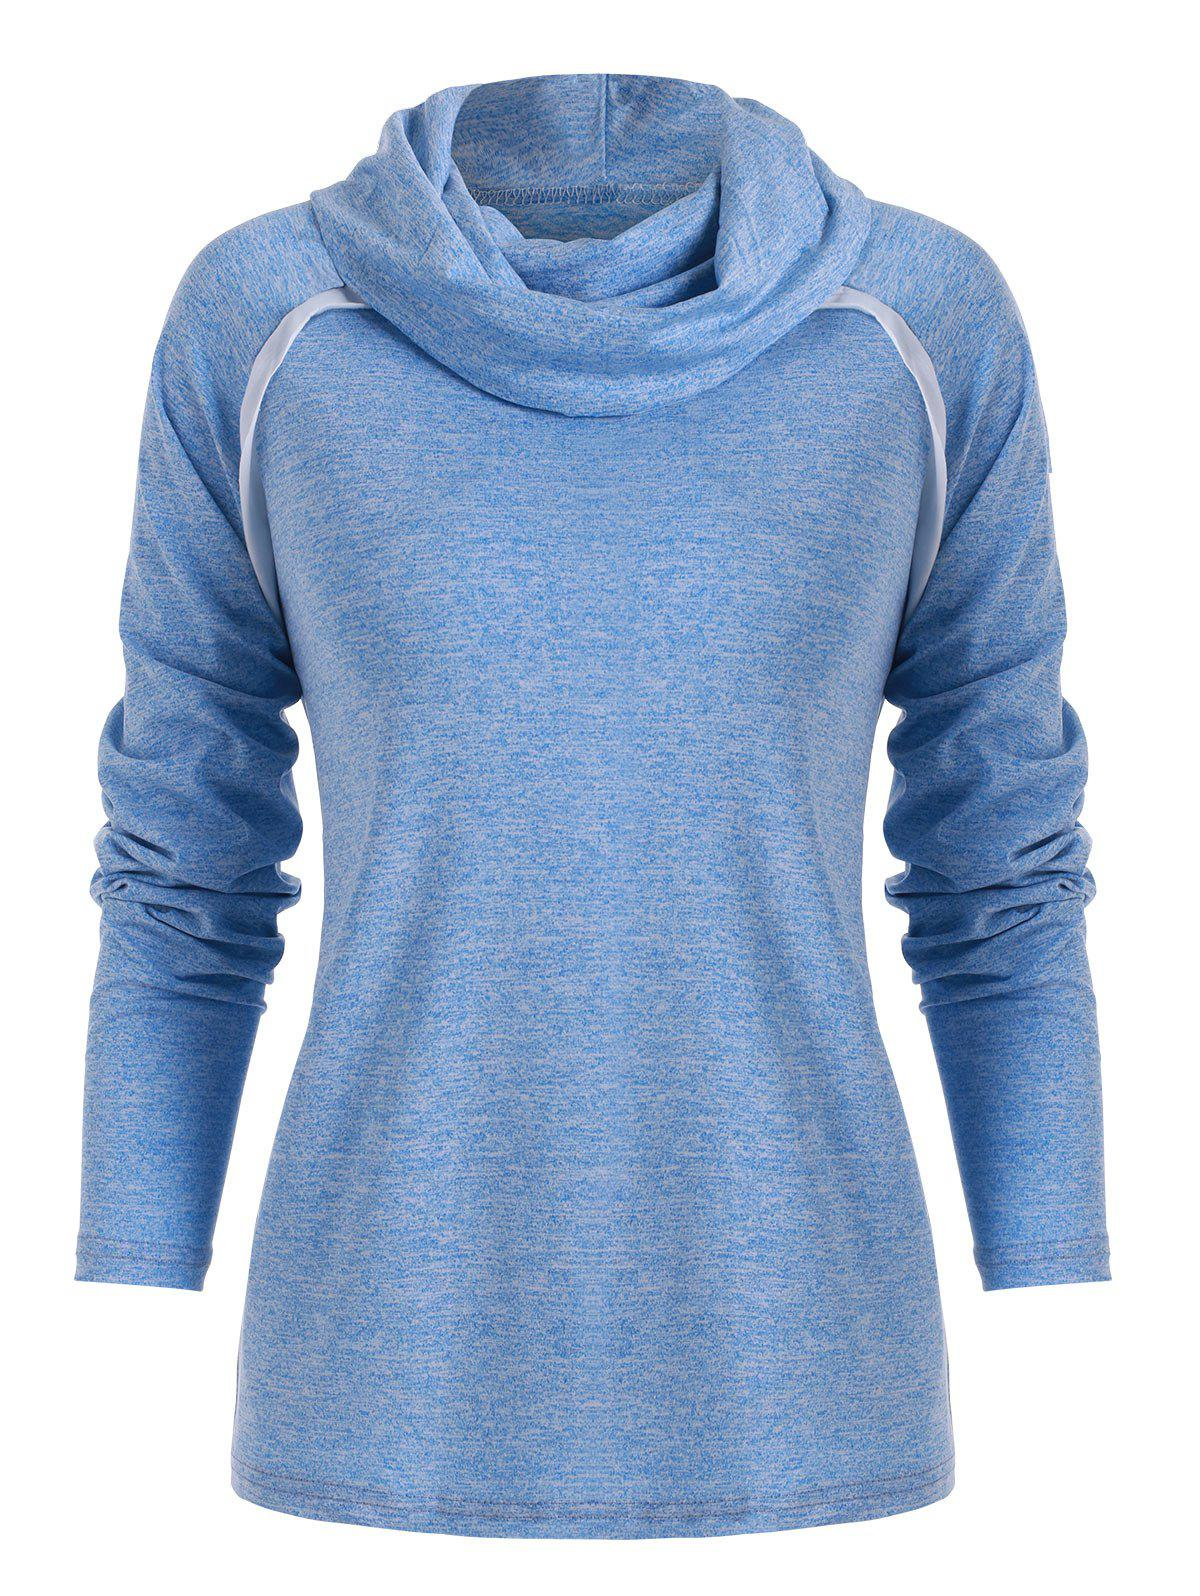 Fancy Cowl Neck Contrast Color Marled T Shirt